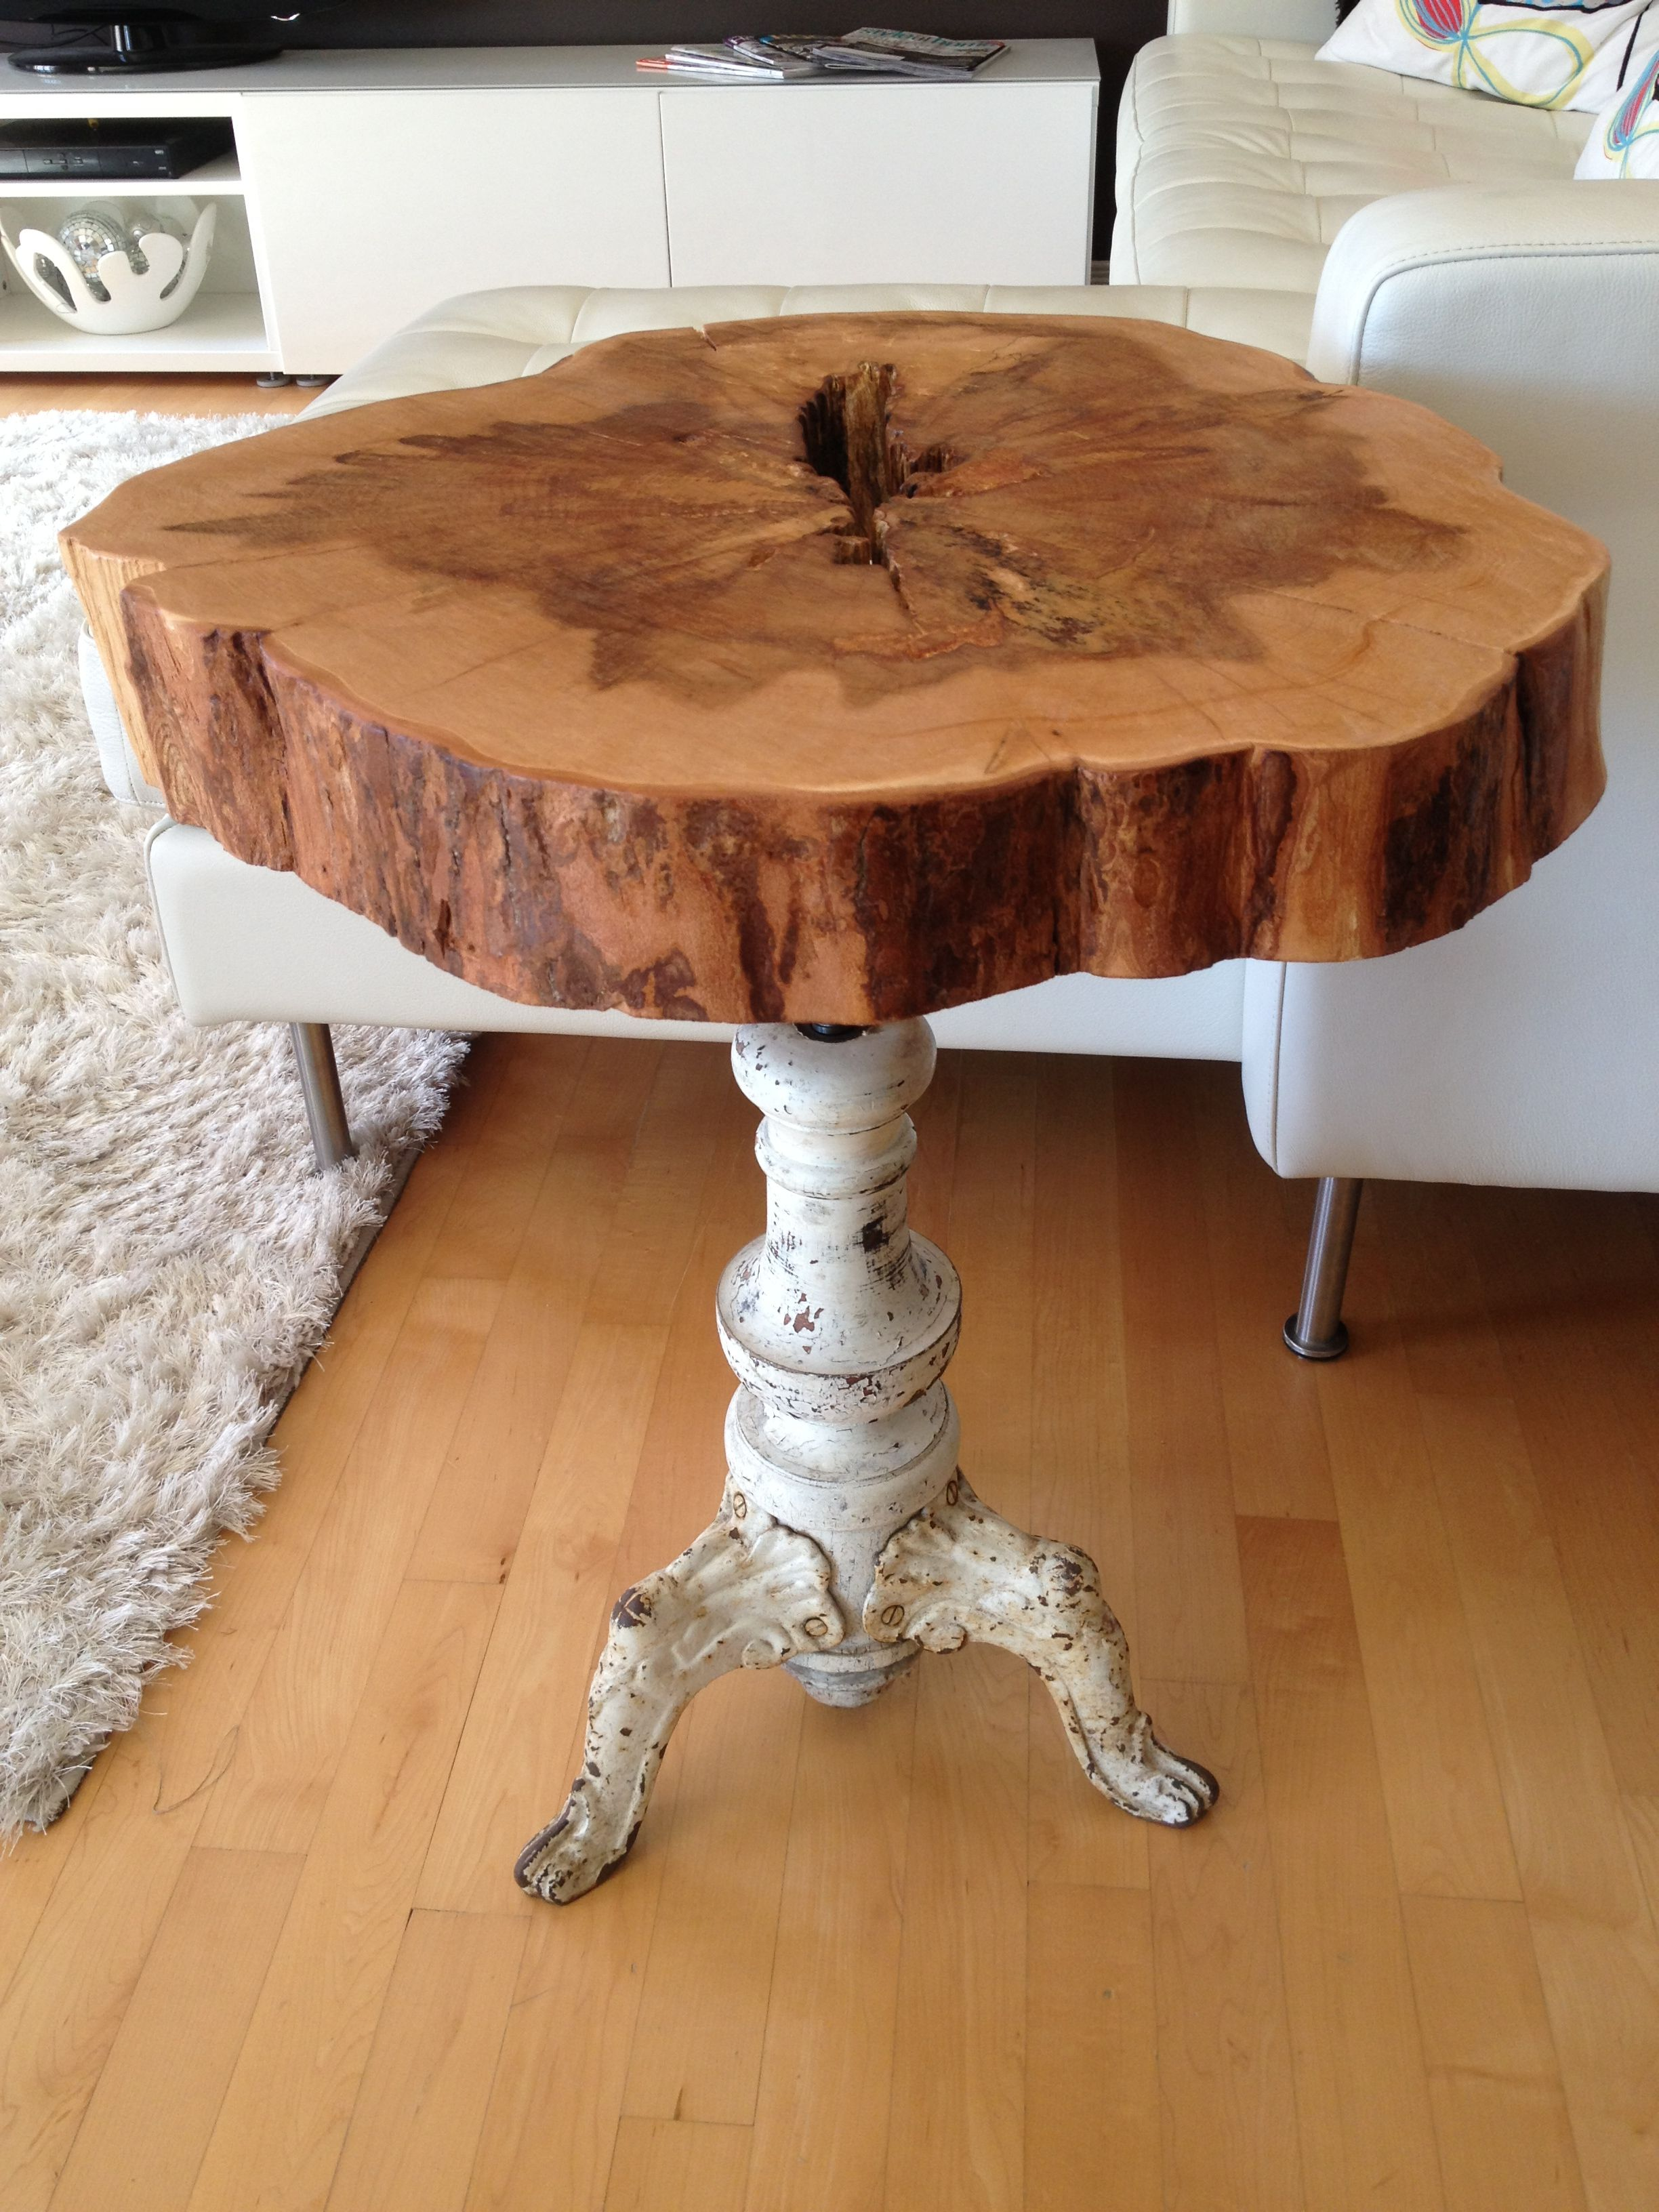 diy tree stump table ideas how make them trunk accent using recycled materials for why not blue lacquer side tall mirrored hammered metal top coffee pier one chair cushions patio